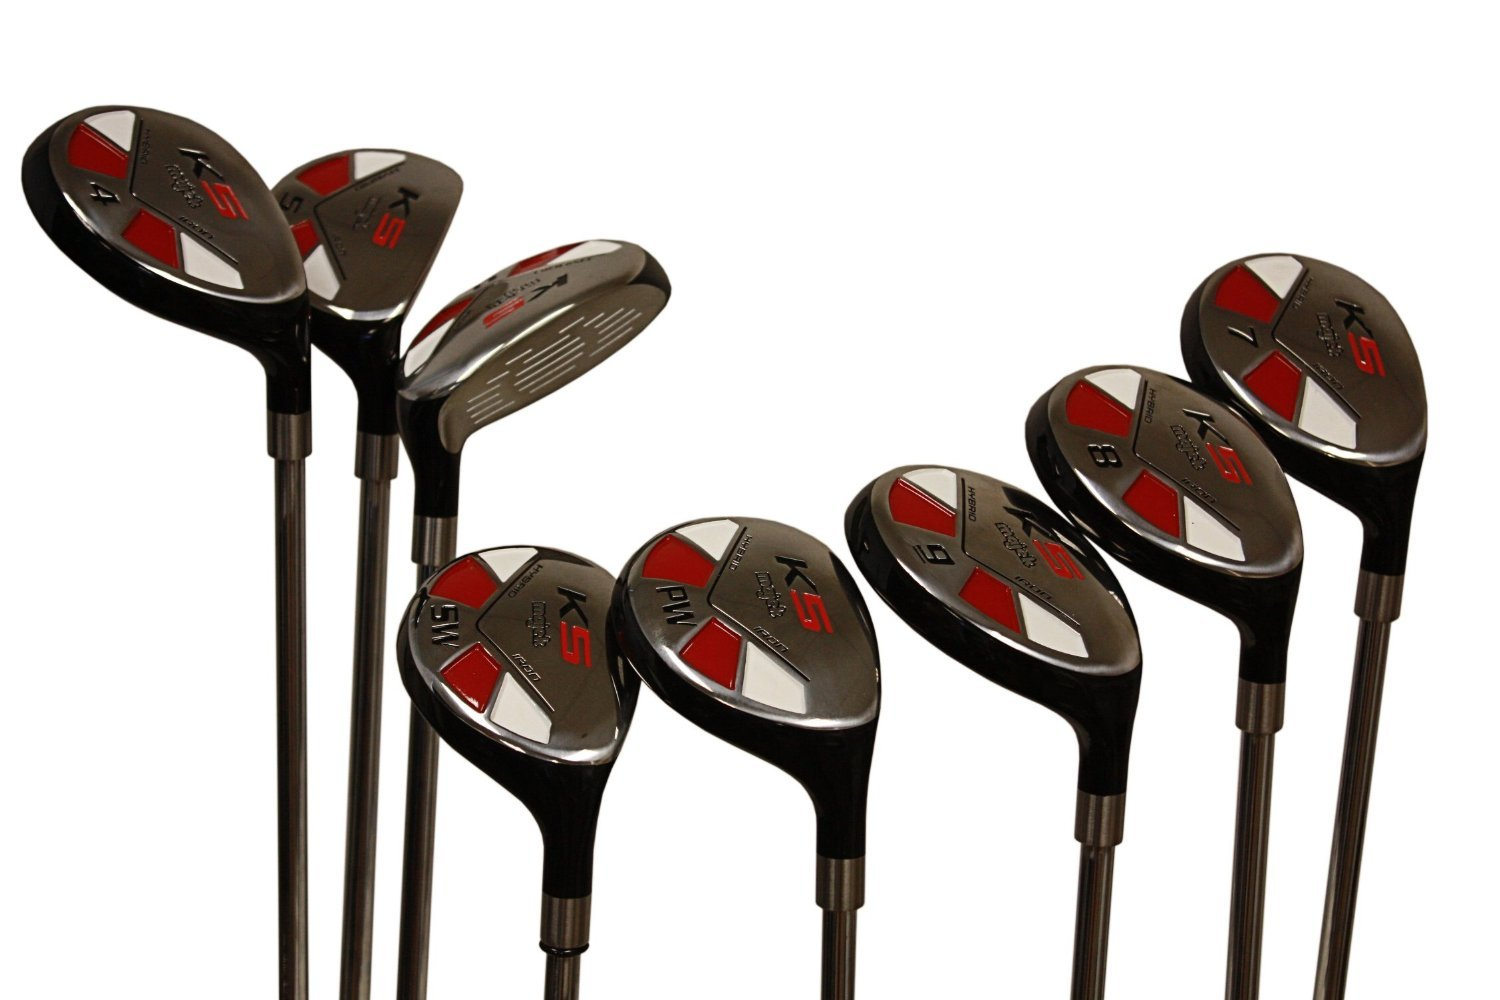 """Senior Men's Majek Golf All Hybrid Complete Full Set, which includes: #3, 4, 5, 6, 7, 8, 9, PW Senior Flex with Tacki-Mac Midsize Grips Right Handed New Rescue Utility """"A"""" Flex Clubs"""